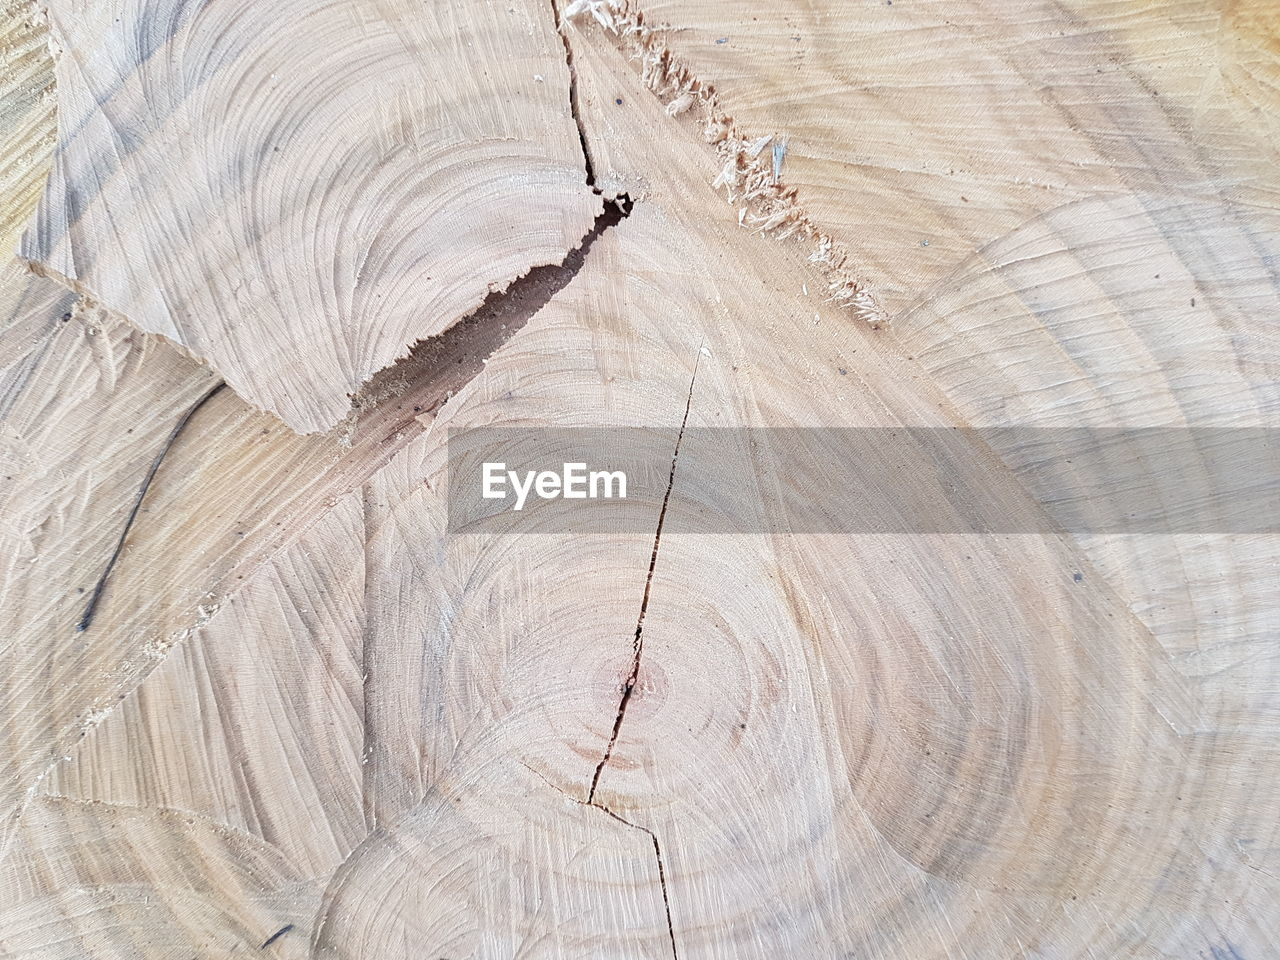 wood - material, timber, textured, tree ring, pattern, brown, backgrounds, wood grain, lumber industry, cross section, full frame, tree, nature, hardwood, concentric, tree stump, no people, day, close-up, outdoors